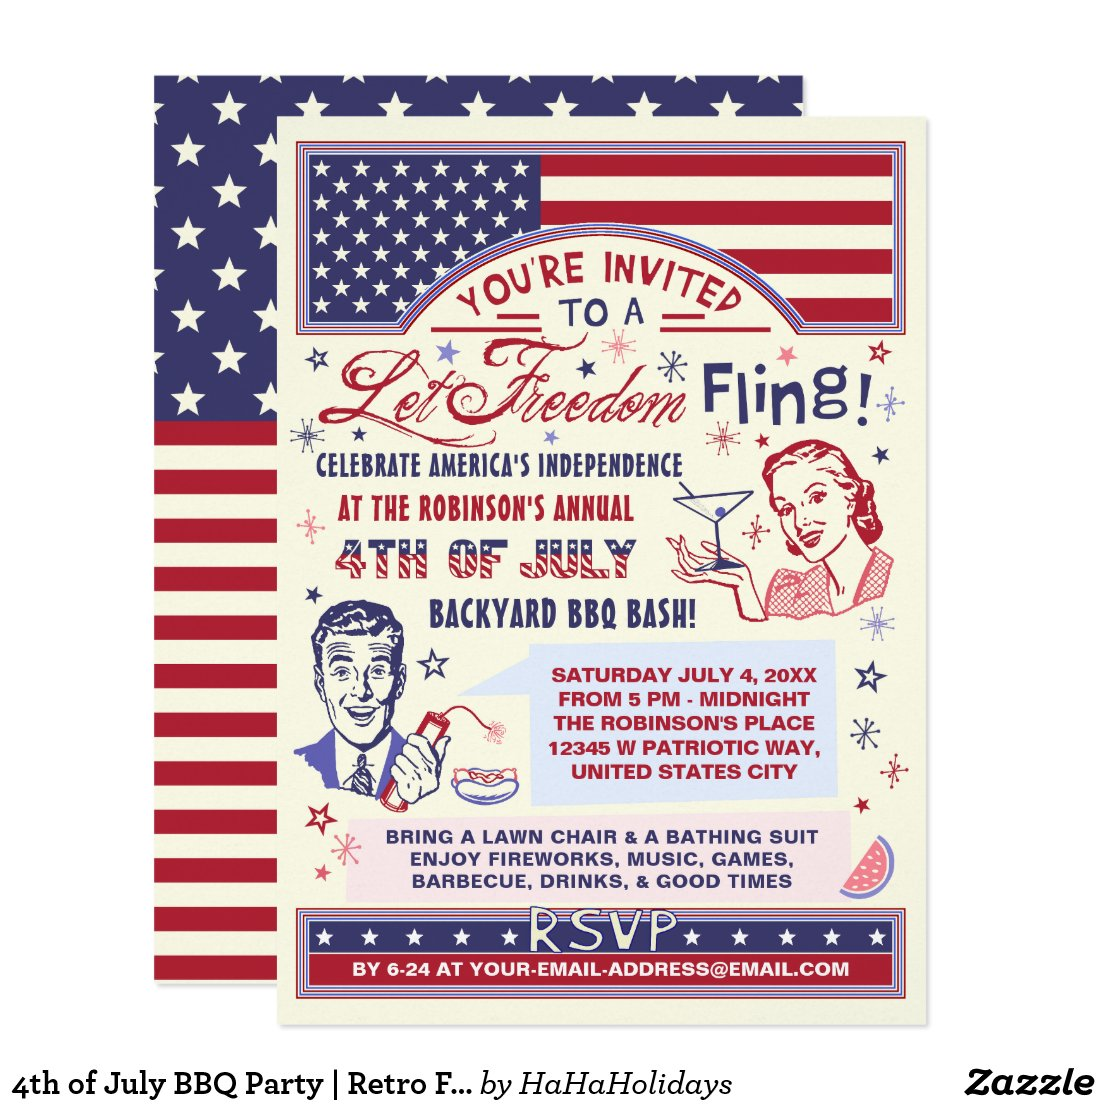 4th of July BBQ Party | Retro Freedom Fling Humor Card